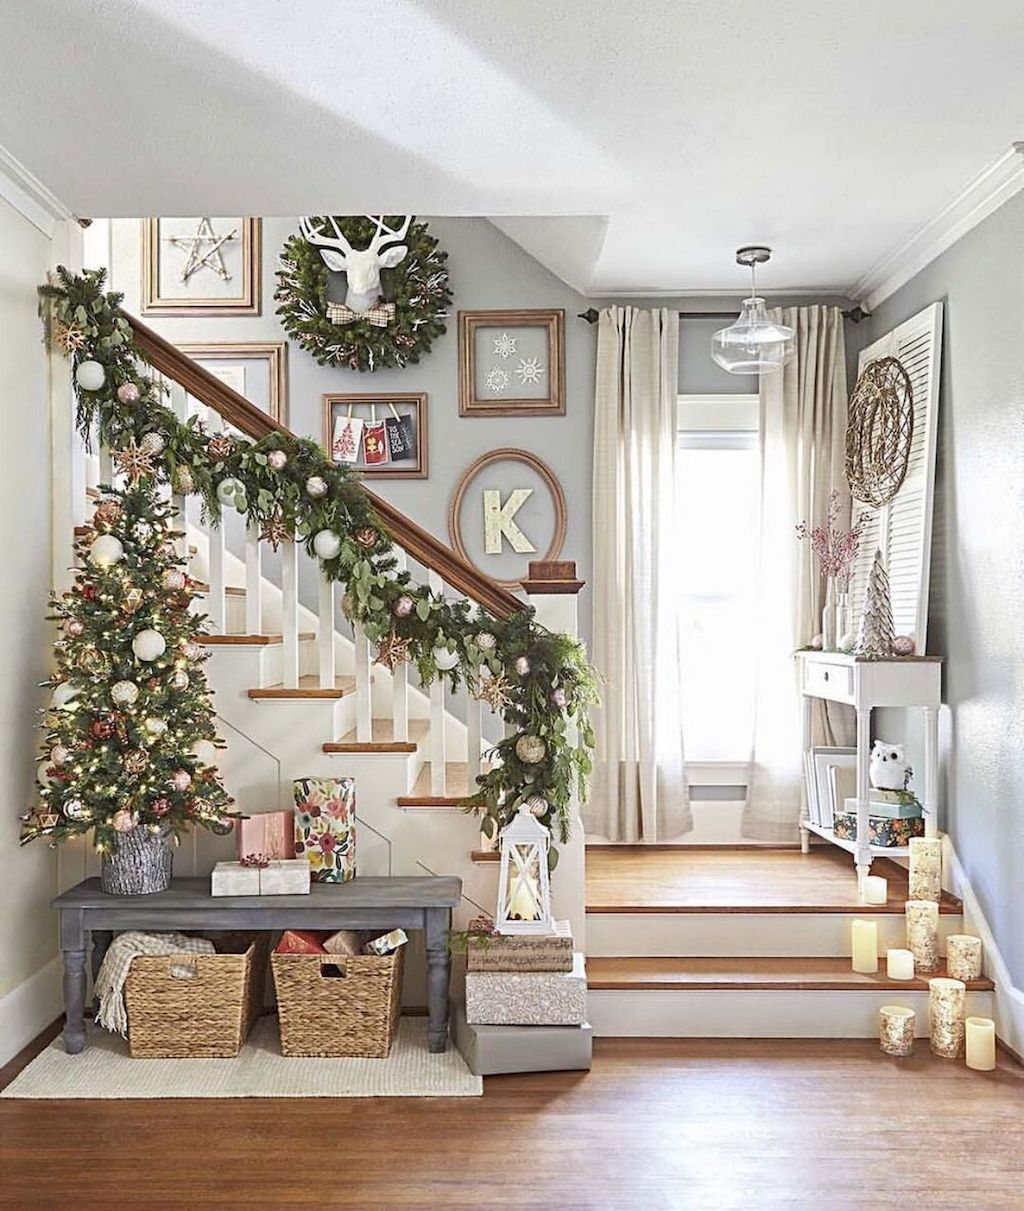 65 Modern Farmhouse Christmas Decorating Ideas Patricia Decor Holiday Decor Christmas Home Christmas Decorations